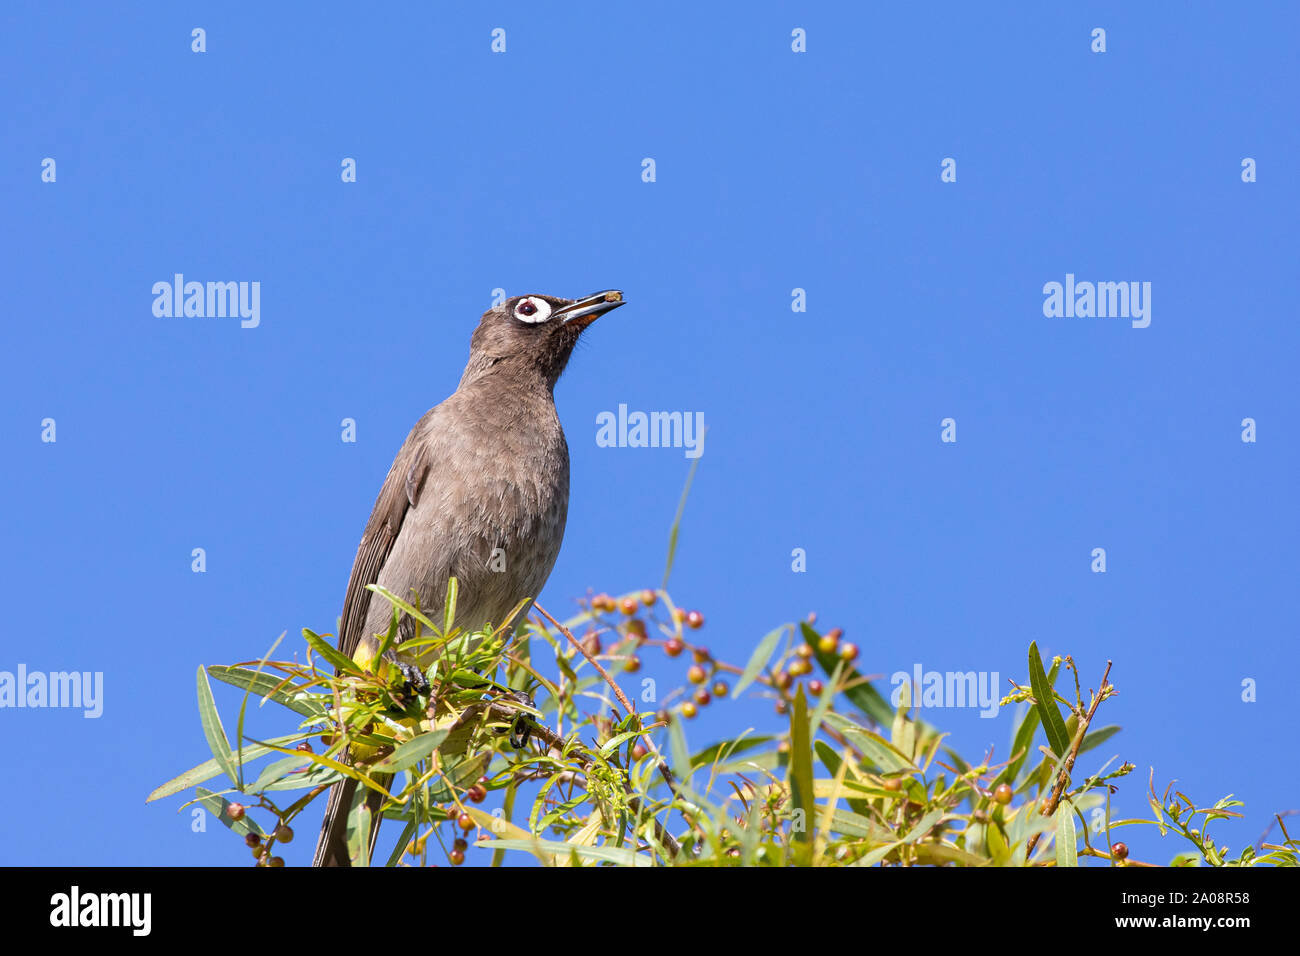 Cape Bulbul (Pycnonotus capensis) eating  berries on a Karee Tree (Searsia lancea)  in winter, Western Cape, South Africa perched with berry in beak Stock Photo